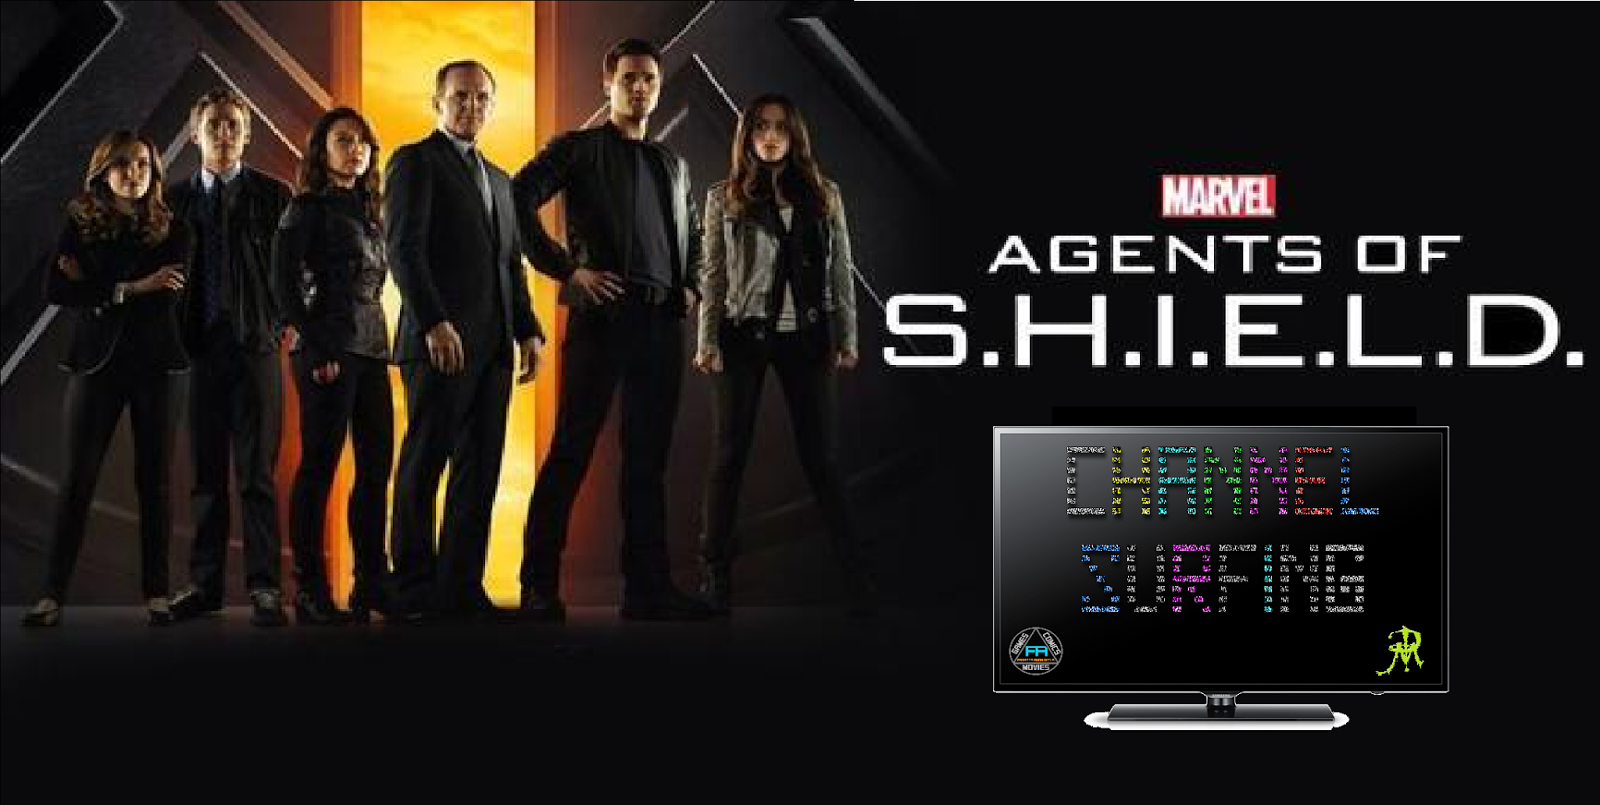 Marvel's Agents of S.H.I.E.L.D. Spoilers and News